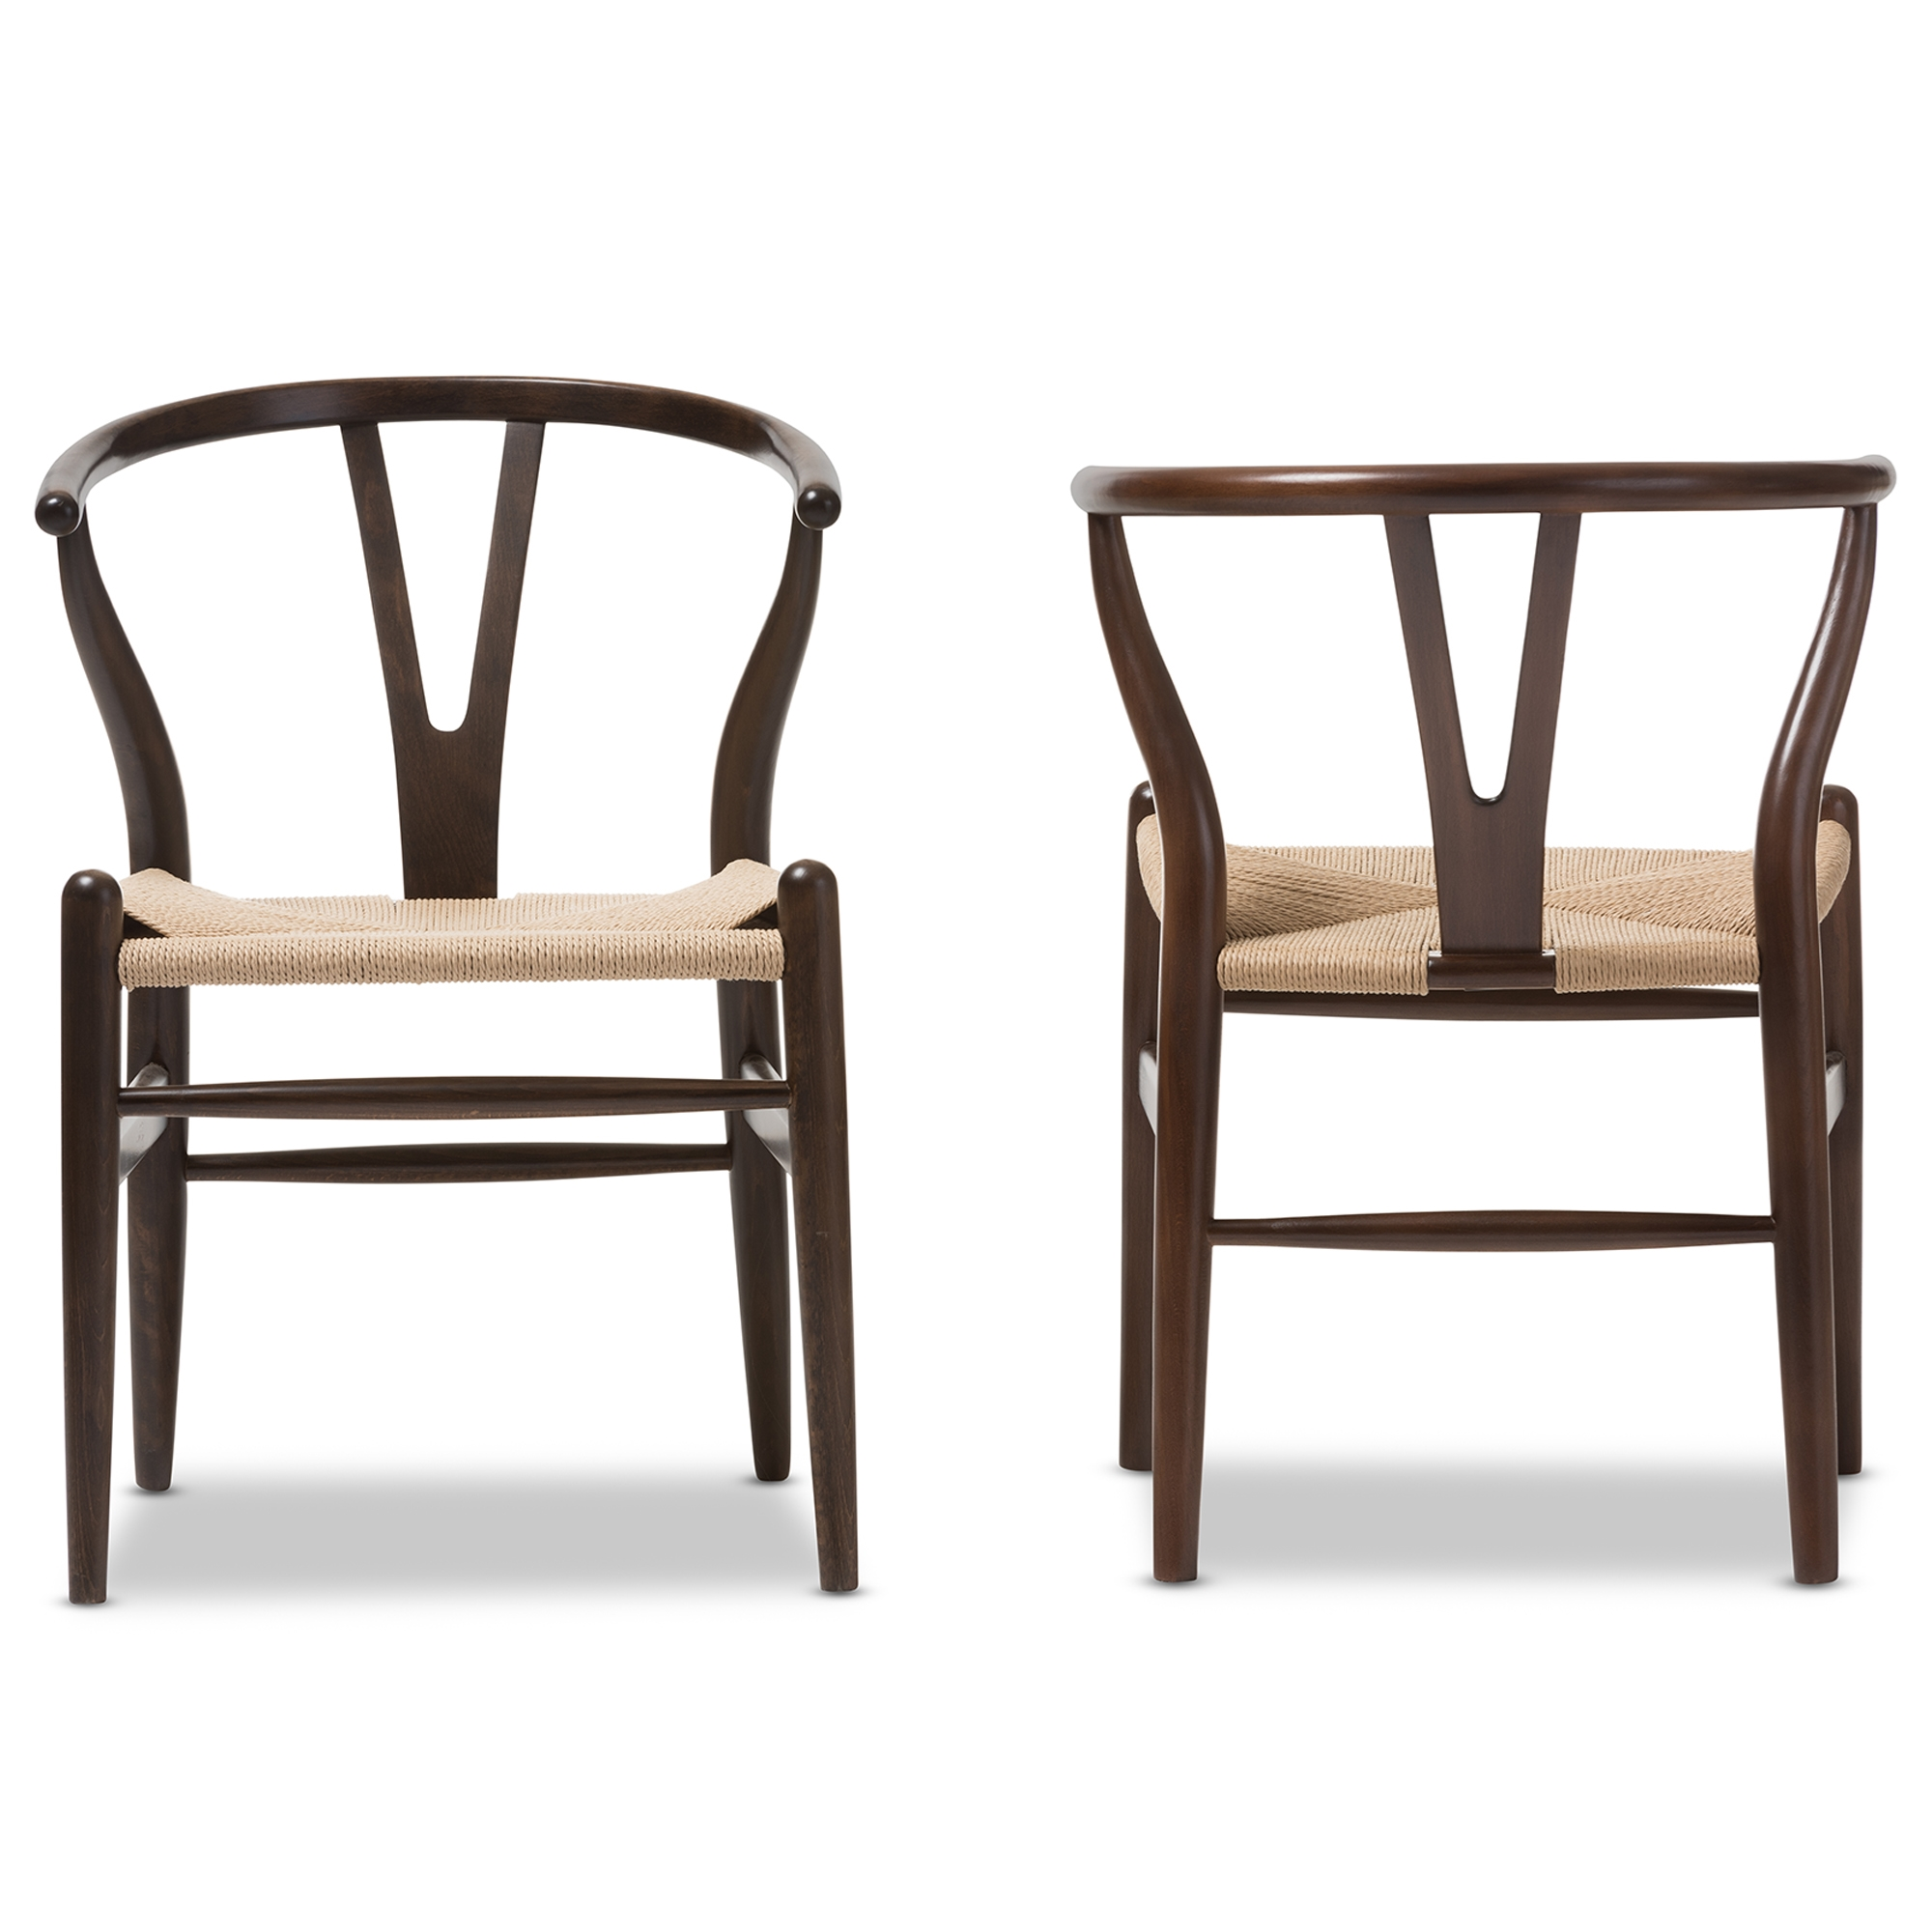 Wishbone Chairs Wishbone Chair Dark Brown Wood Y Chair Wholesale Interiors